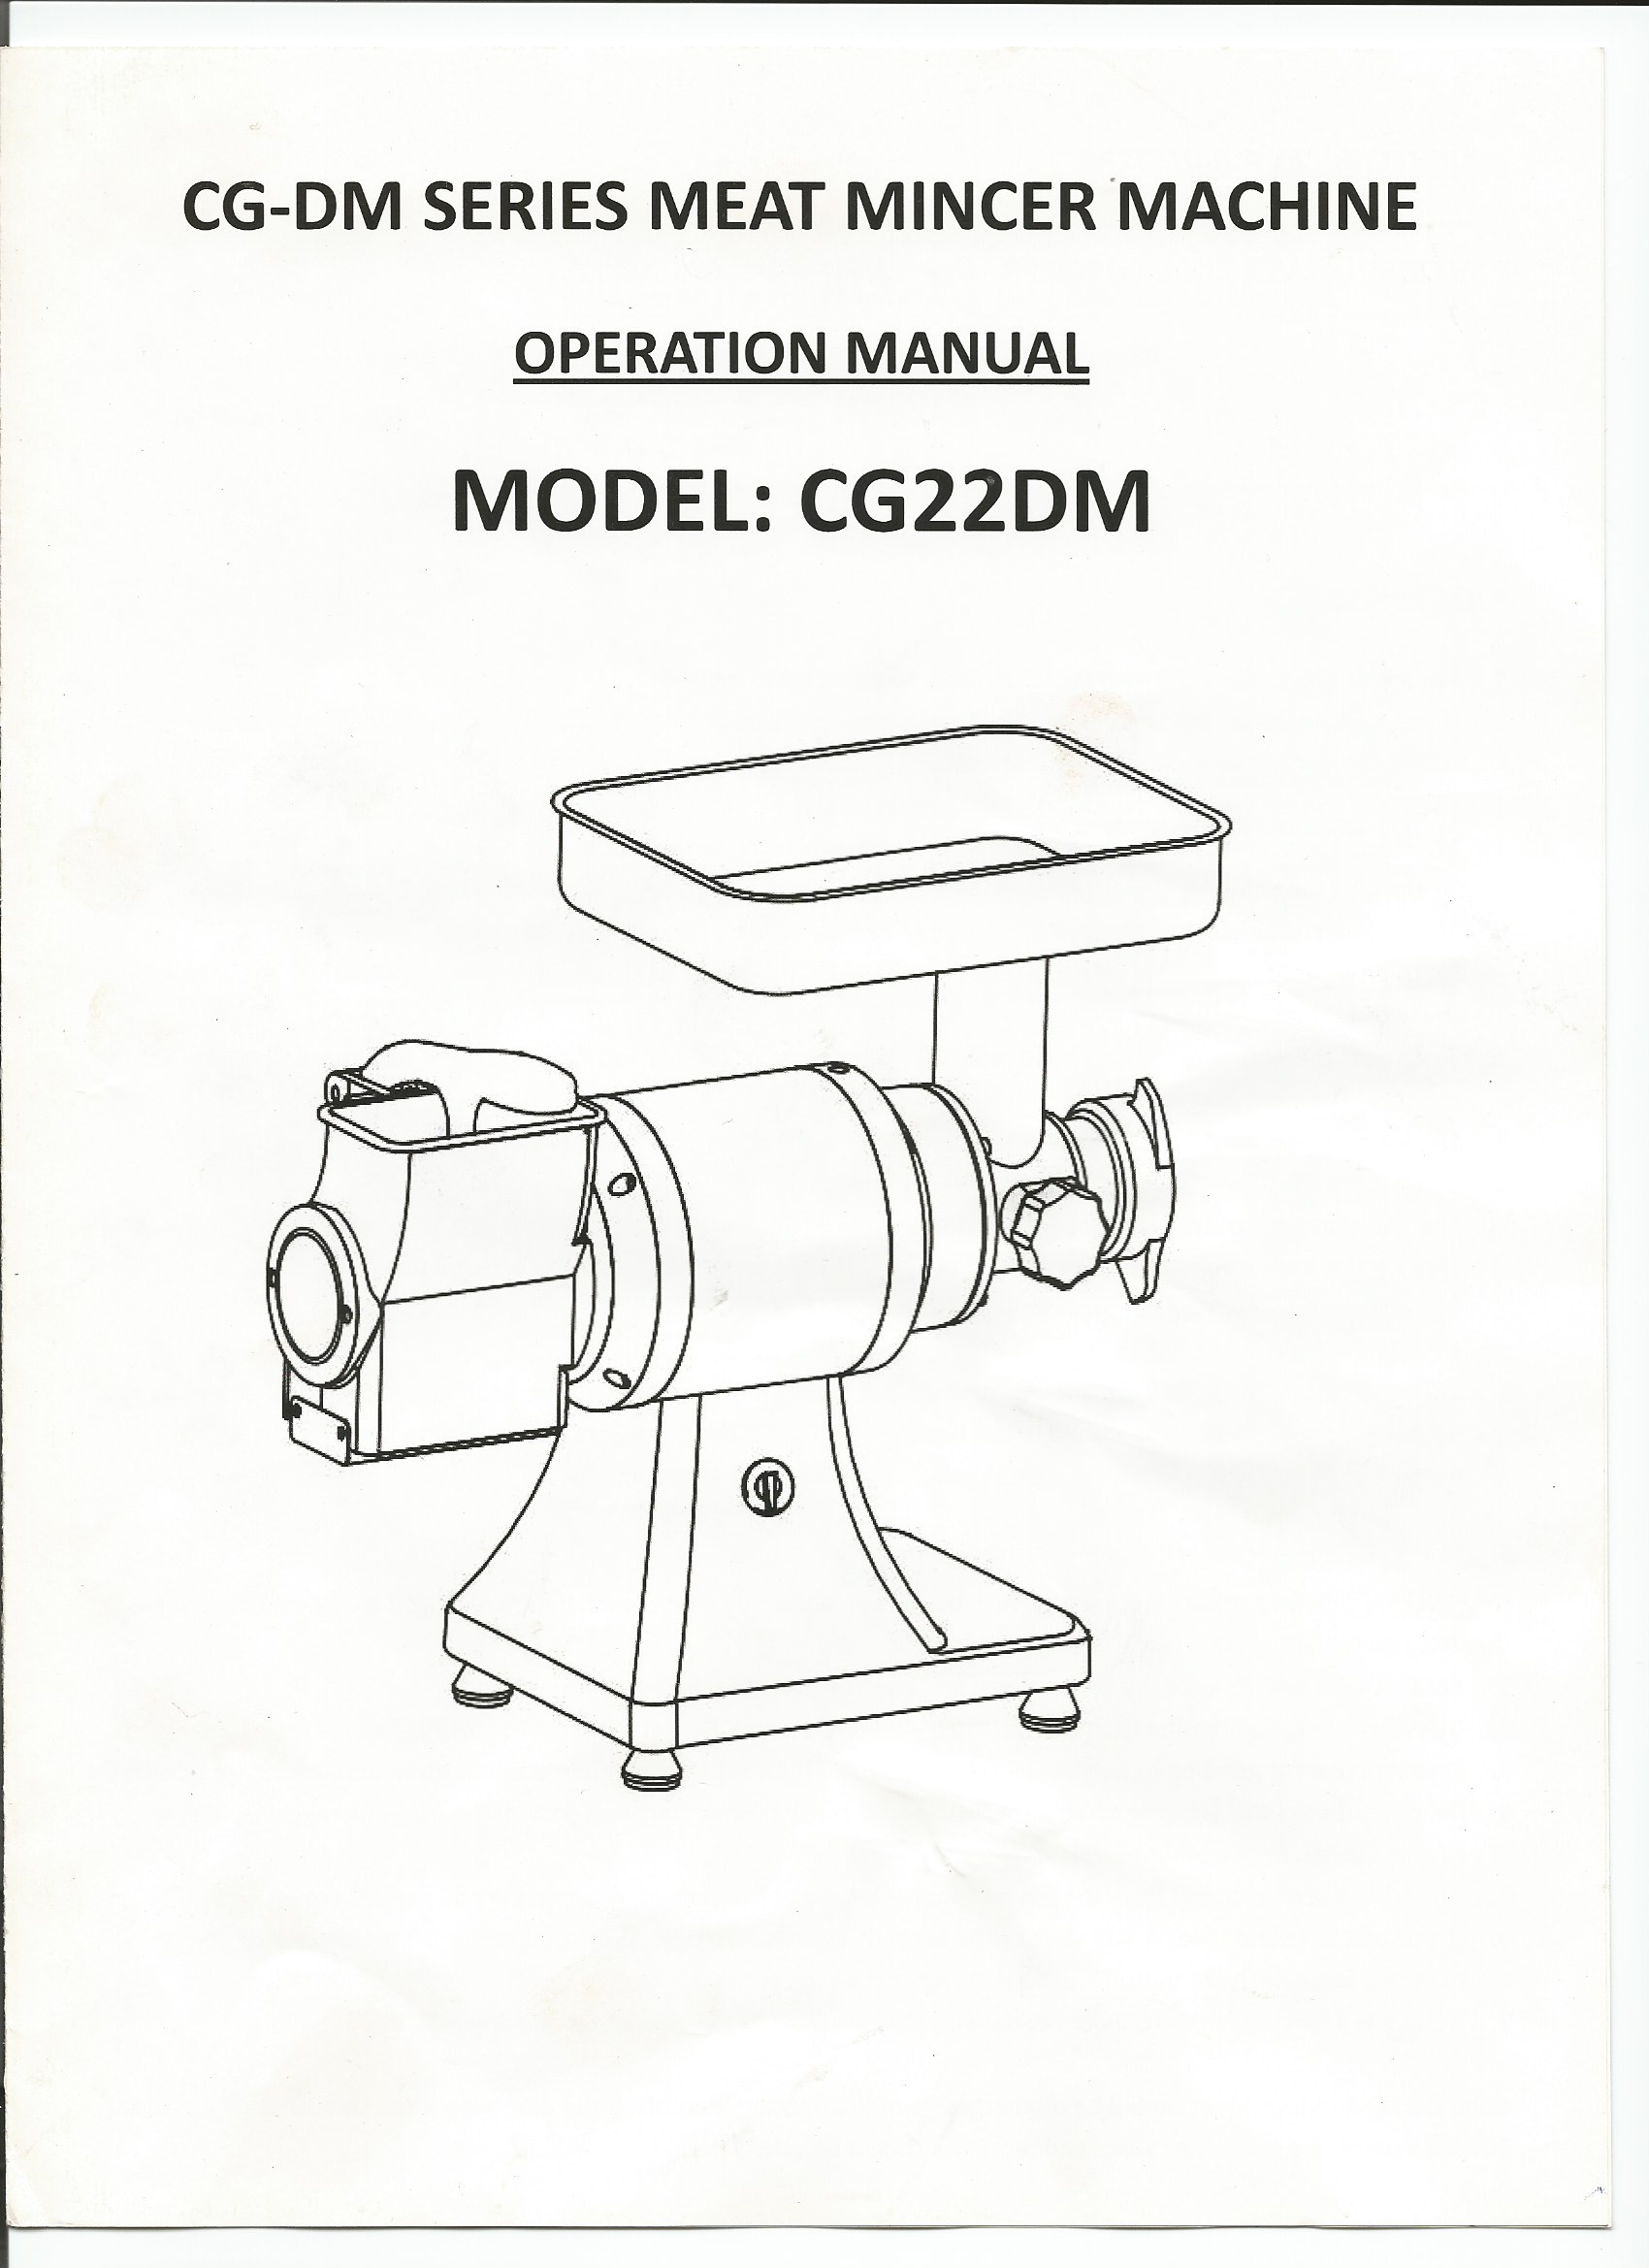 Cheese grater grinder Manual